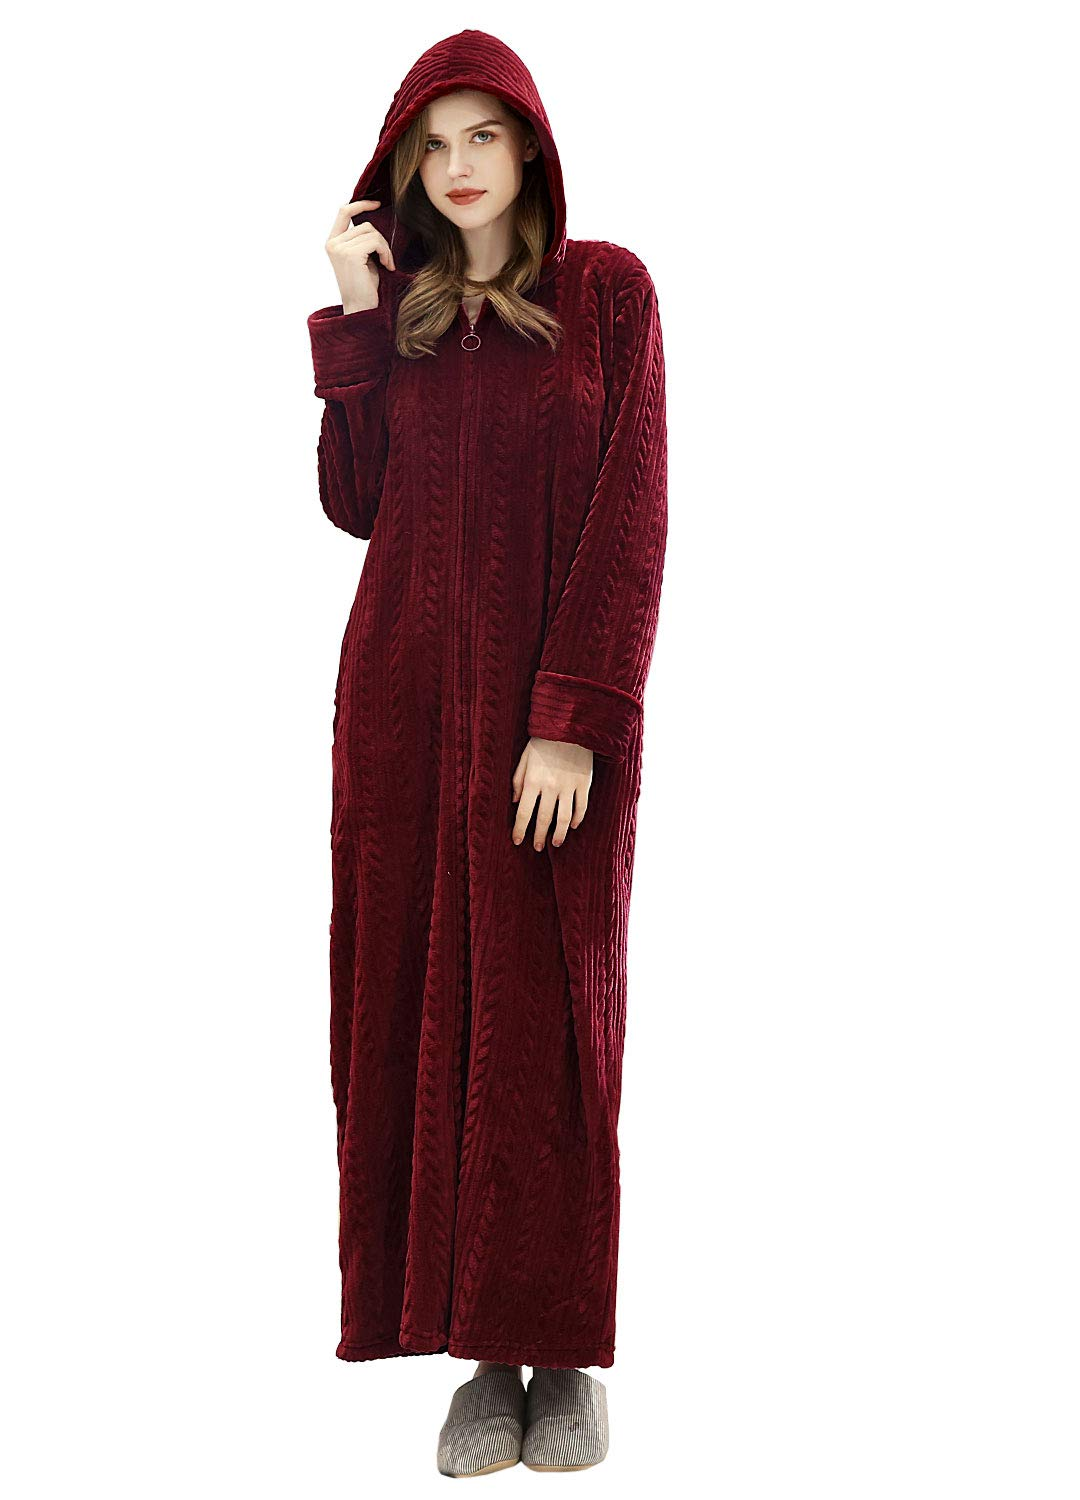 Women Robe Hooded Zipper Front Soft Warm Long Bathrobe Sleepwear Winter Robes